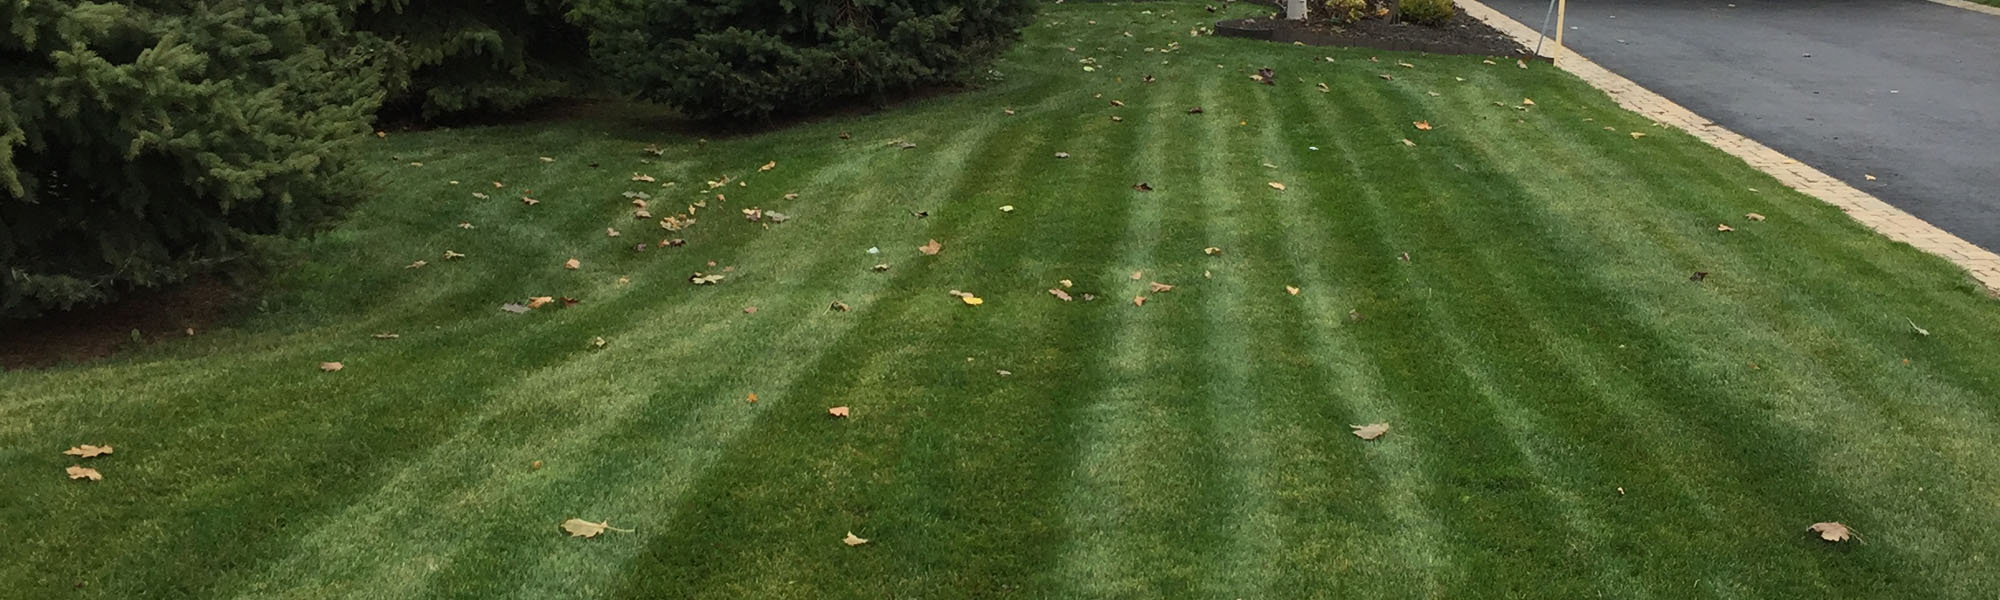 Lawn Mowing Stripes in Wasaga Beach, ON